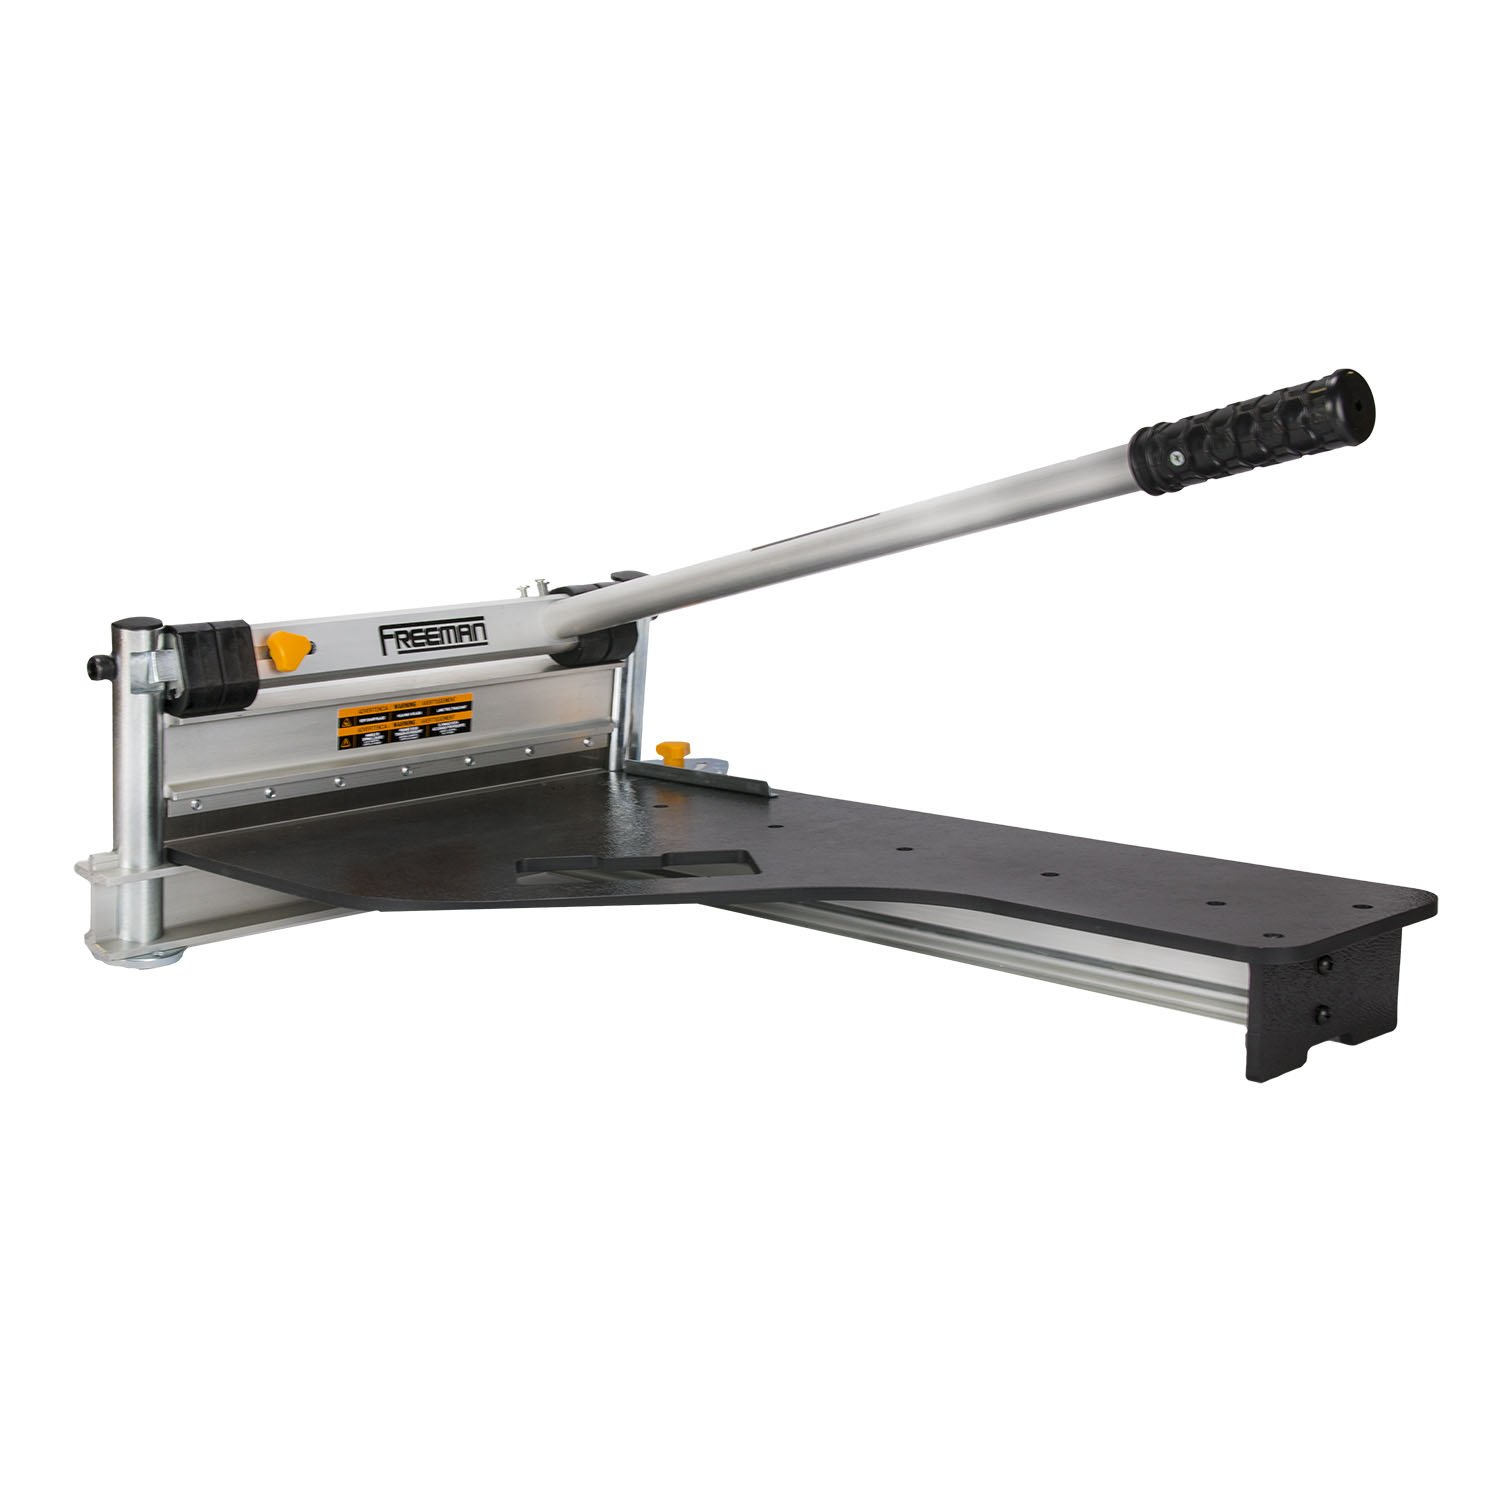 13 Laminate Flooring Cutter With Extended Handle Freeman Tools